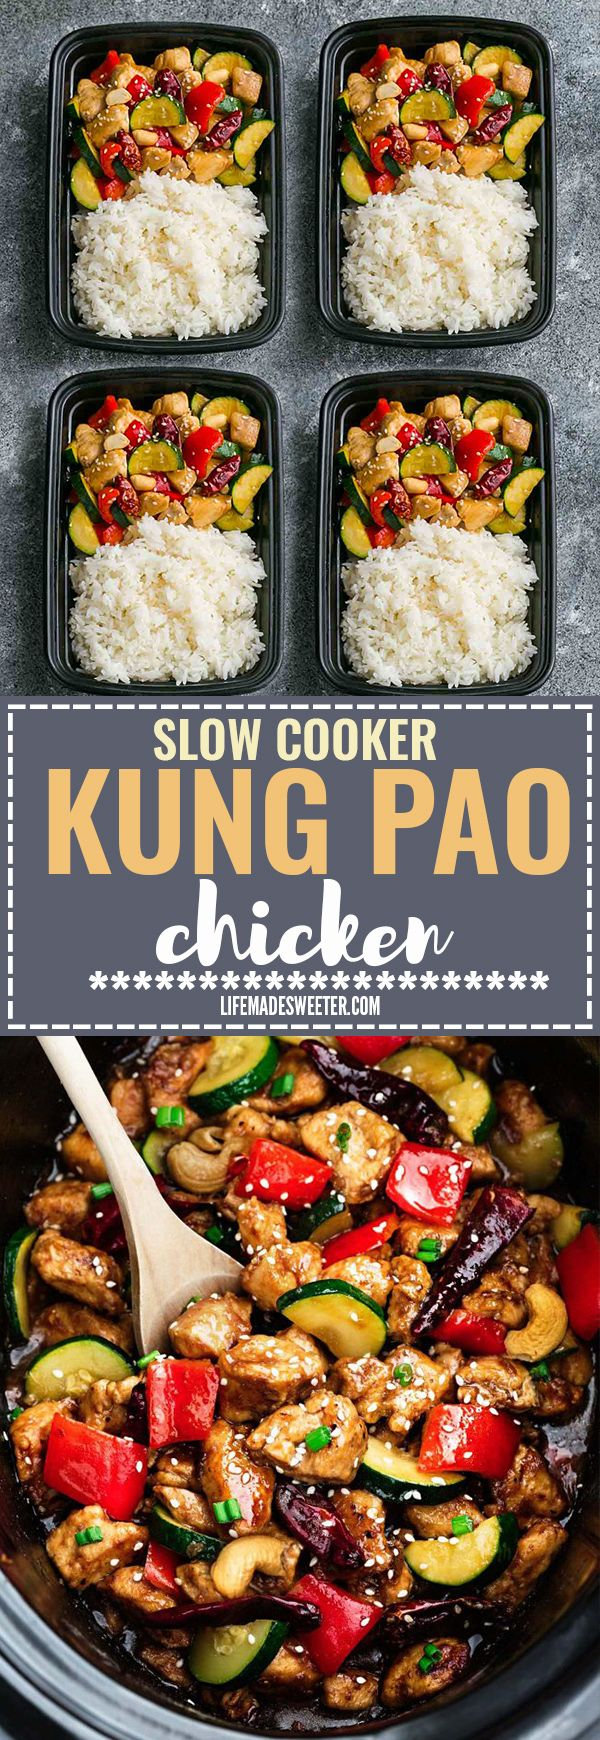 Skinny Slow Cooker or Instant Pot Kung Pao Chicken makes the perfect easy and lightened up healthy weeknight meal. Best of all, this takeout favorite, is SO much healthier and better than your local Chinese restaurant with just a few minutes of prep time. With gluten free and paleo friendly options. Weekly meal prep or leftovers are great for lunch bowls or lunch boxes for work or school. Instructions for crock-pot and IP pressure cooker #crockpotmealprep